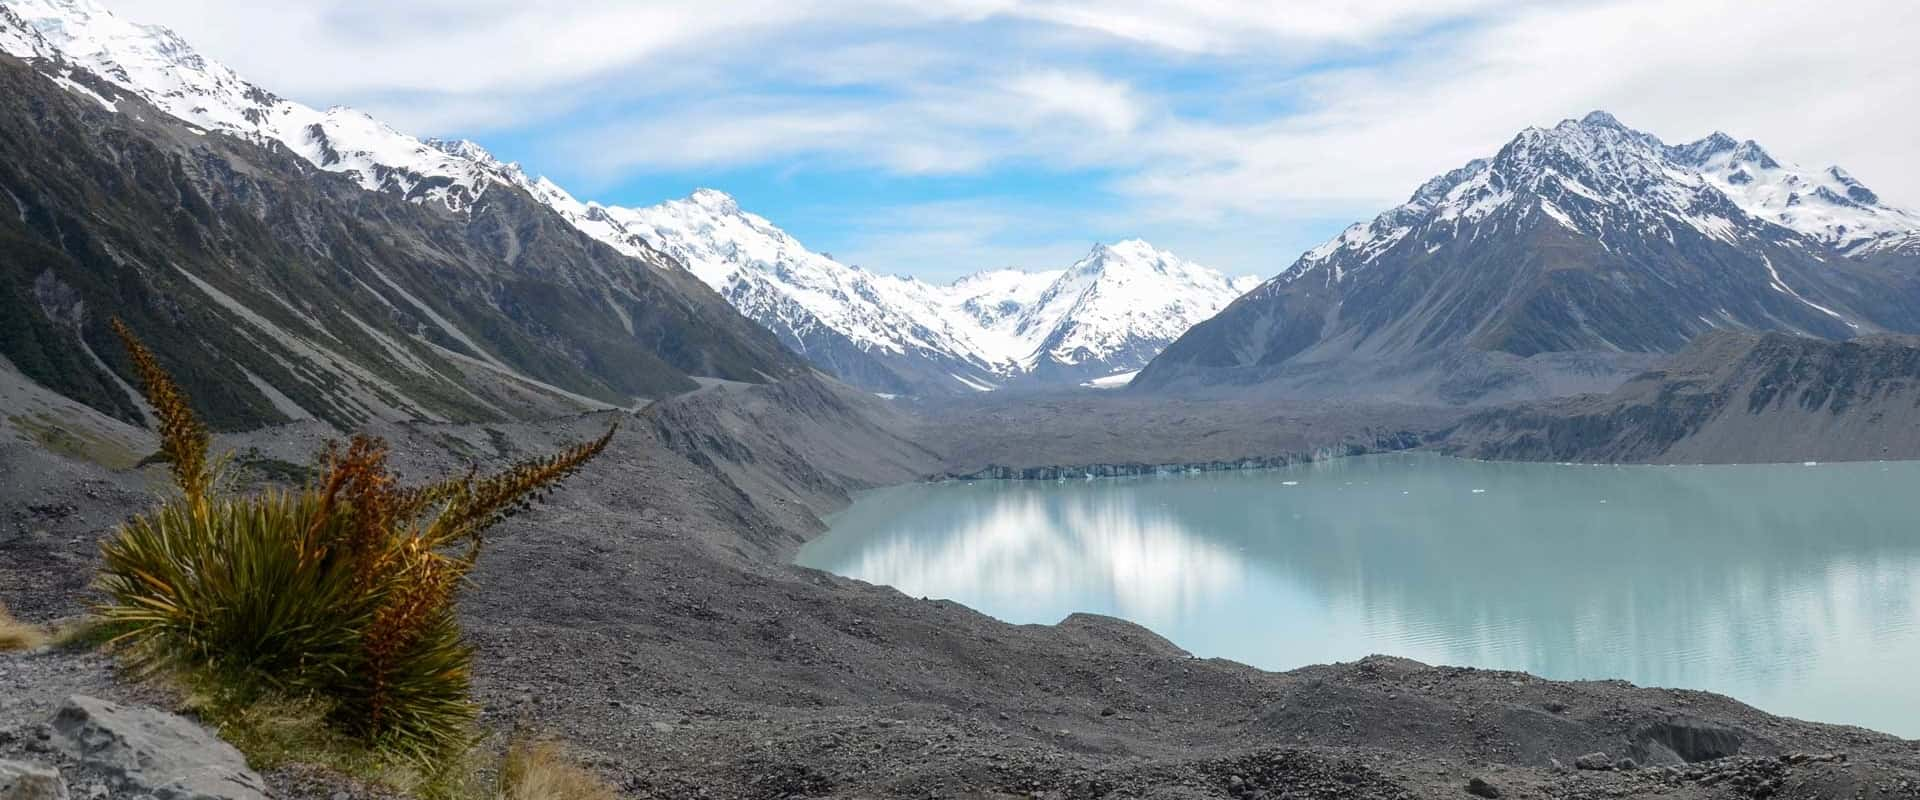 view of Tasman Glacier terminal lake